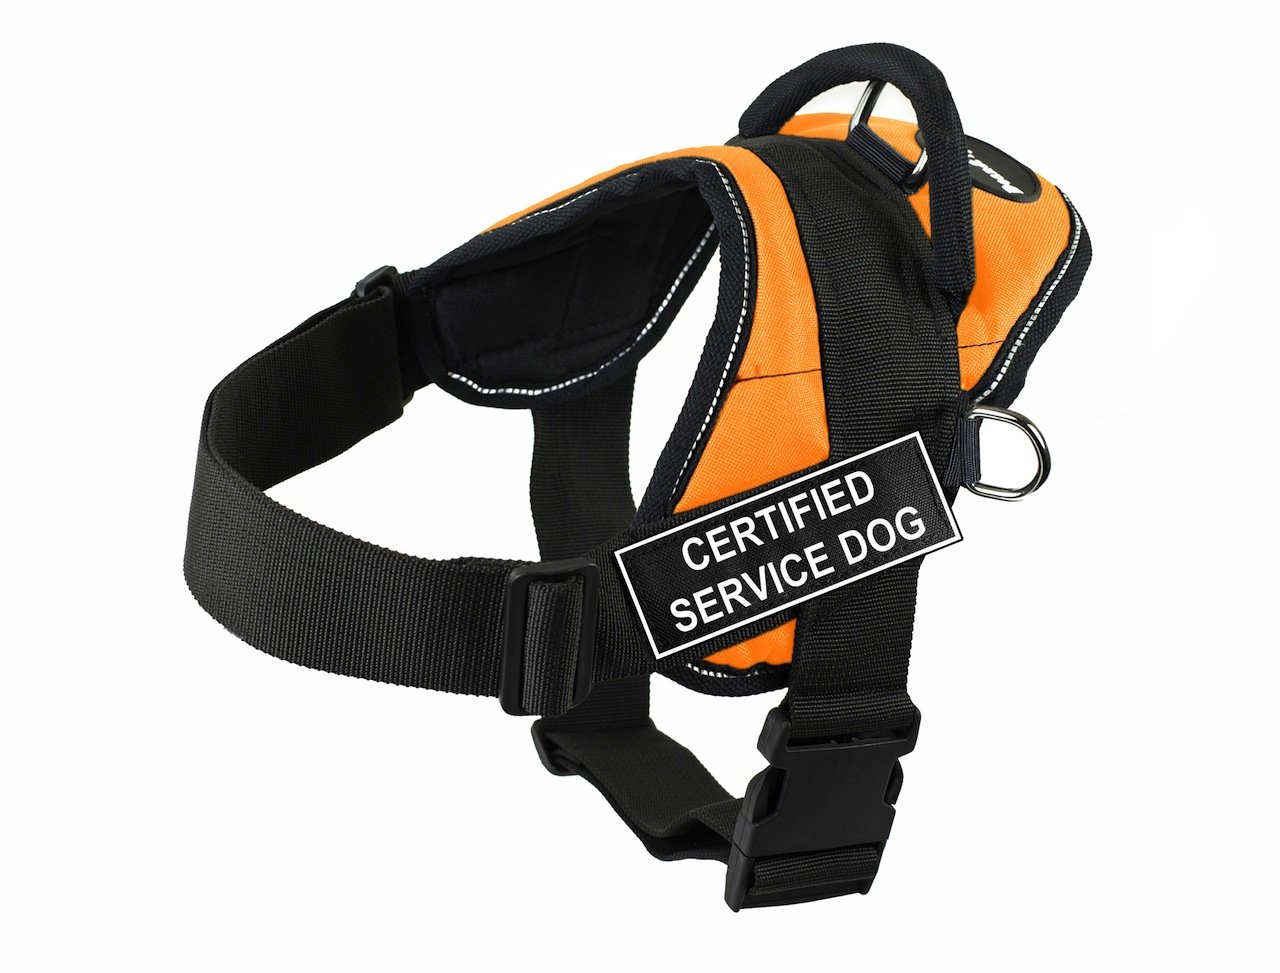 Dean & Tyler Fun Certified Service Dog X-Small orange Harness with Reflective Trim